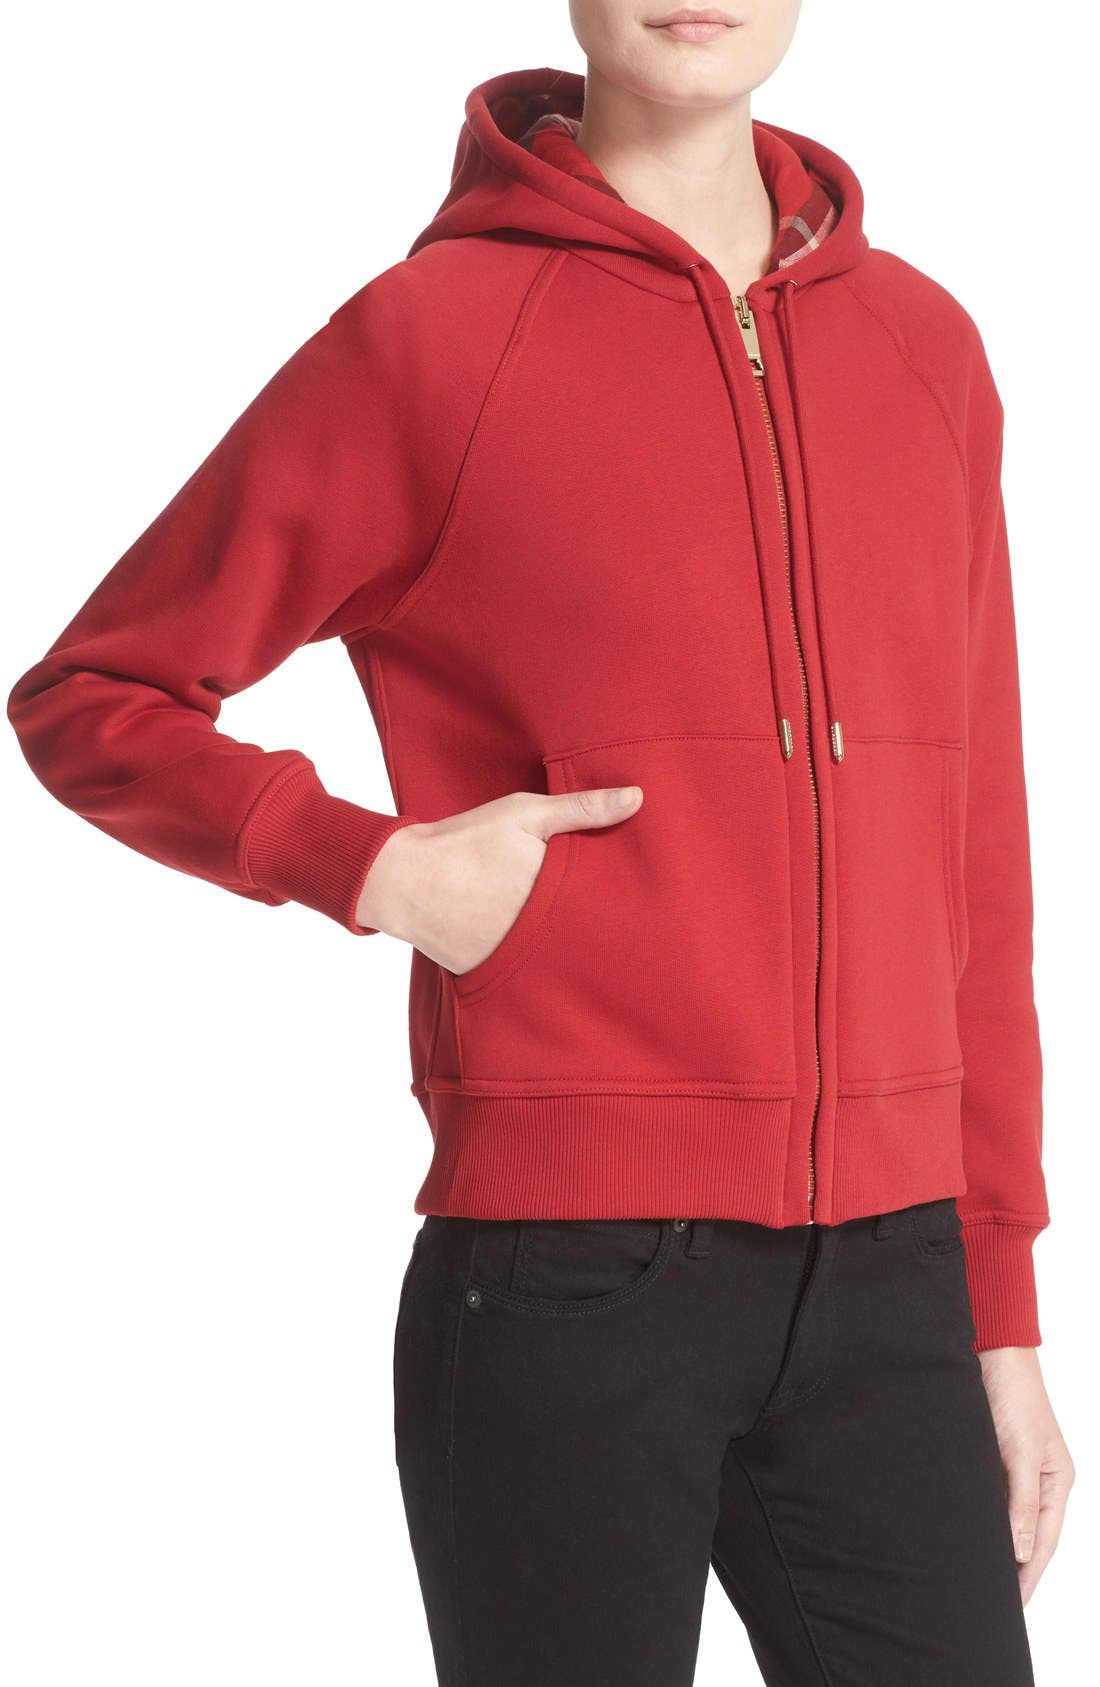 BURBERRY, Check Print Hoodie, Alternate thumbnail 9, color, PARADE RED